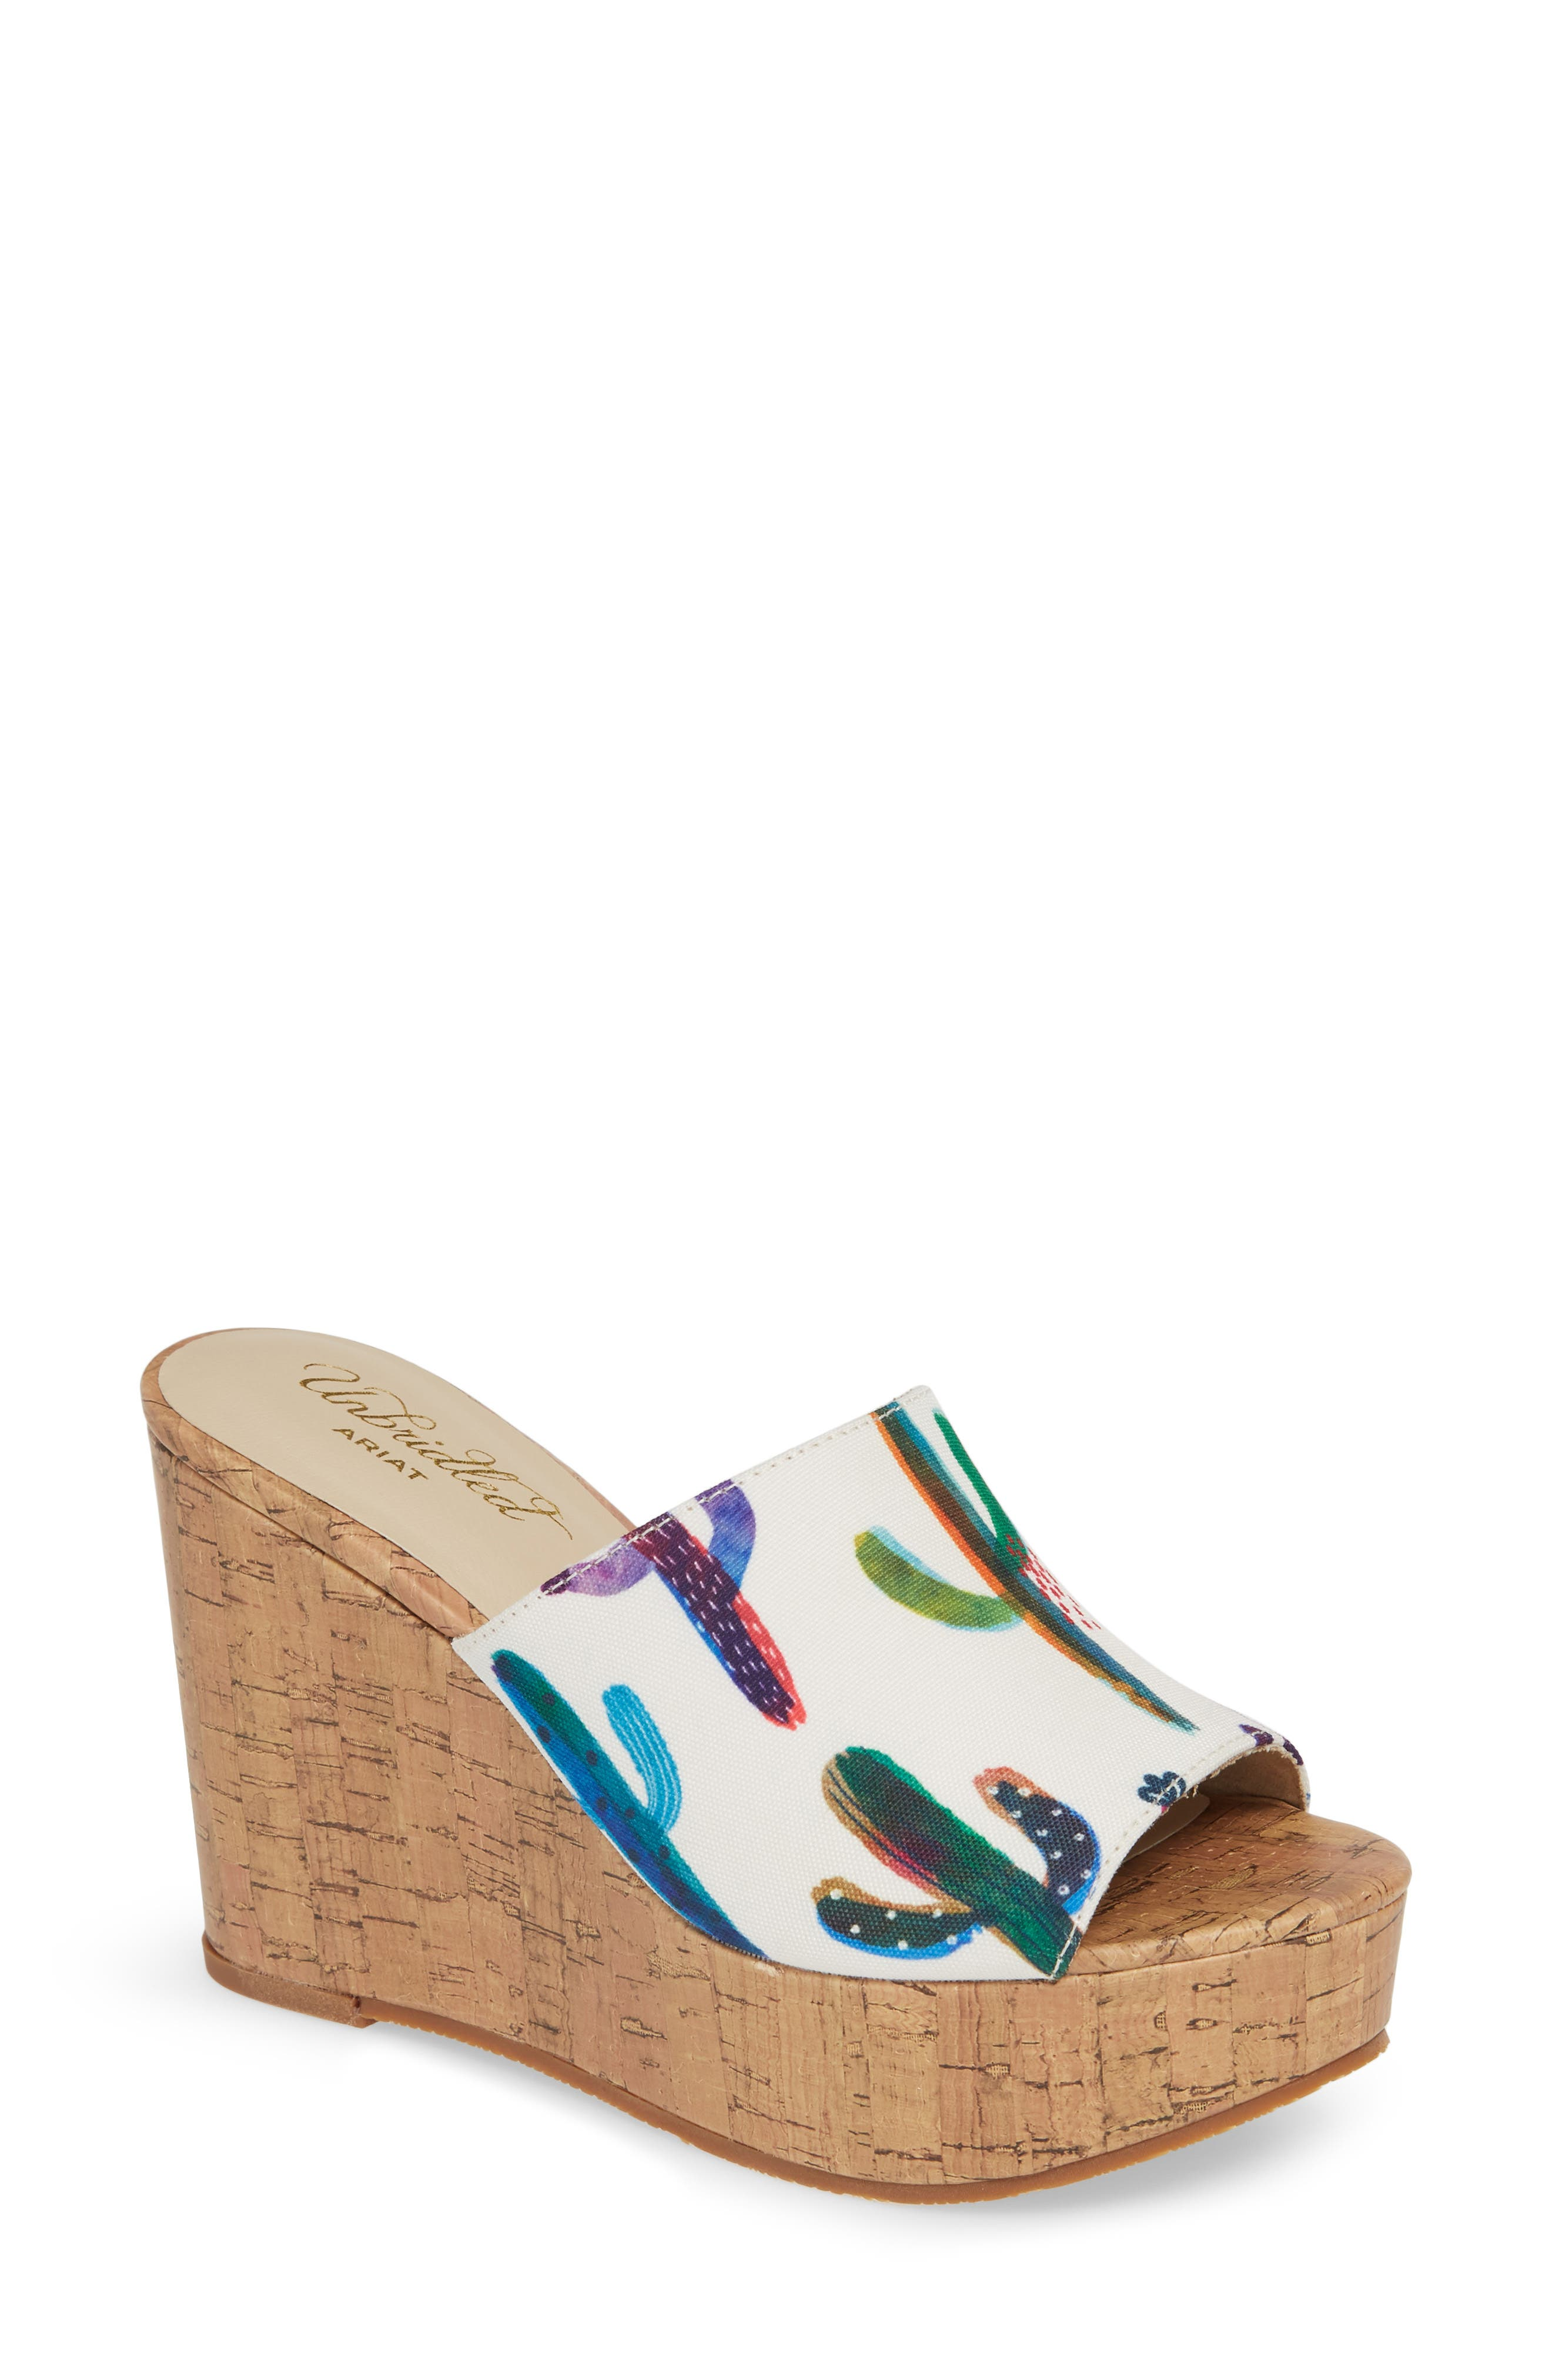 Layla Wedge Slide Sandal, Main, color, CACTUS PRINT FABRIC